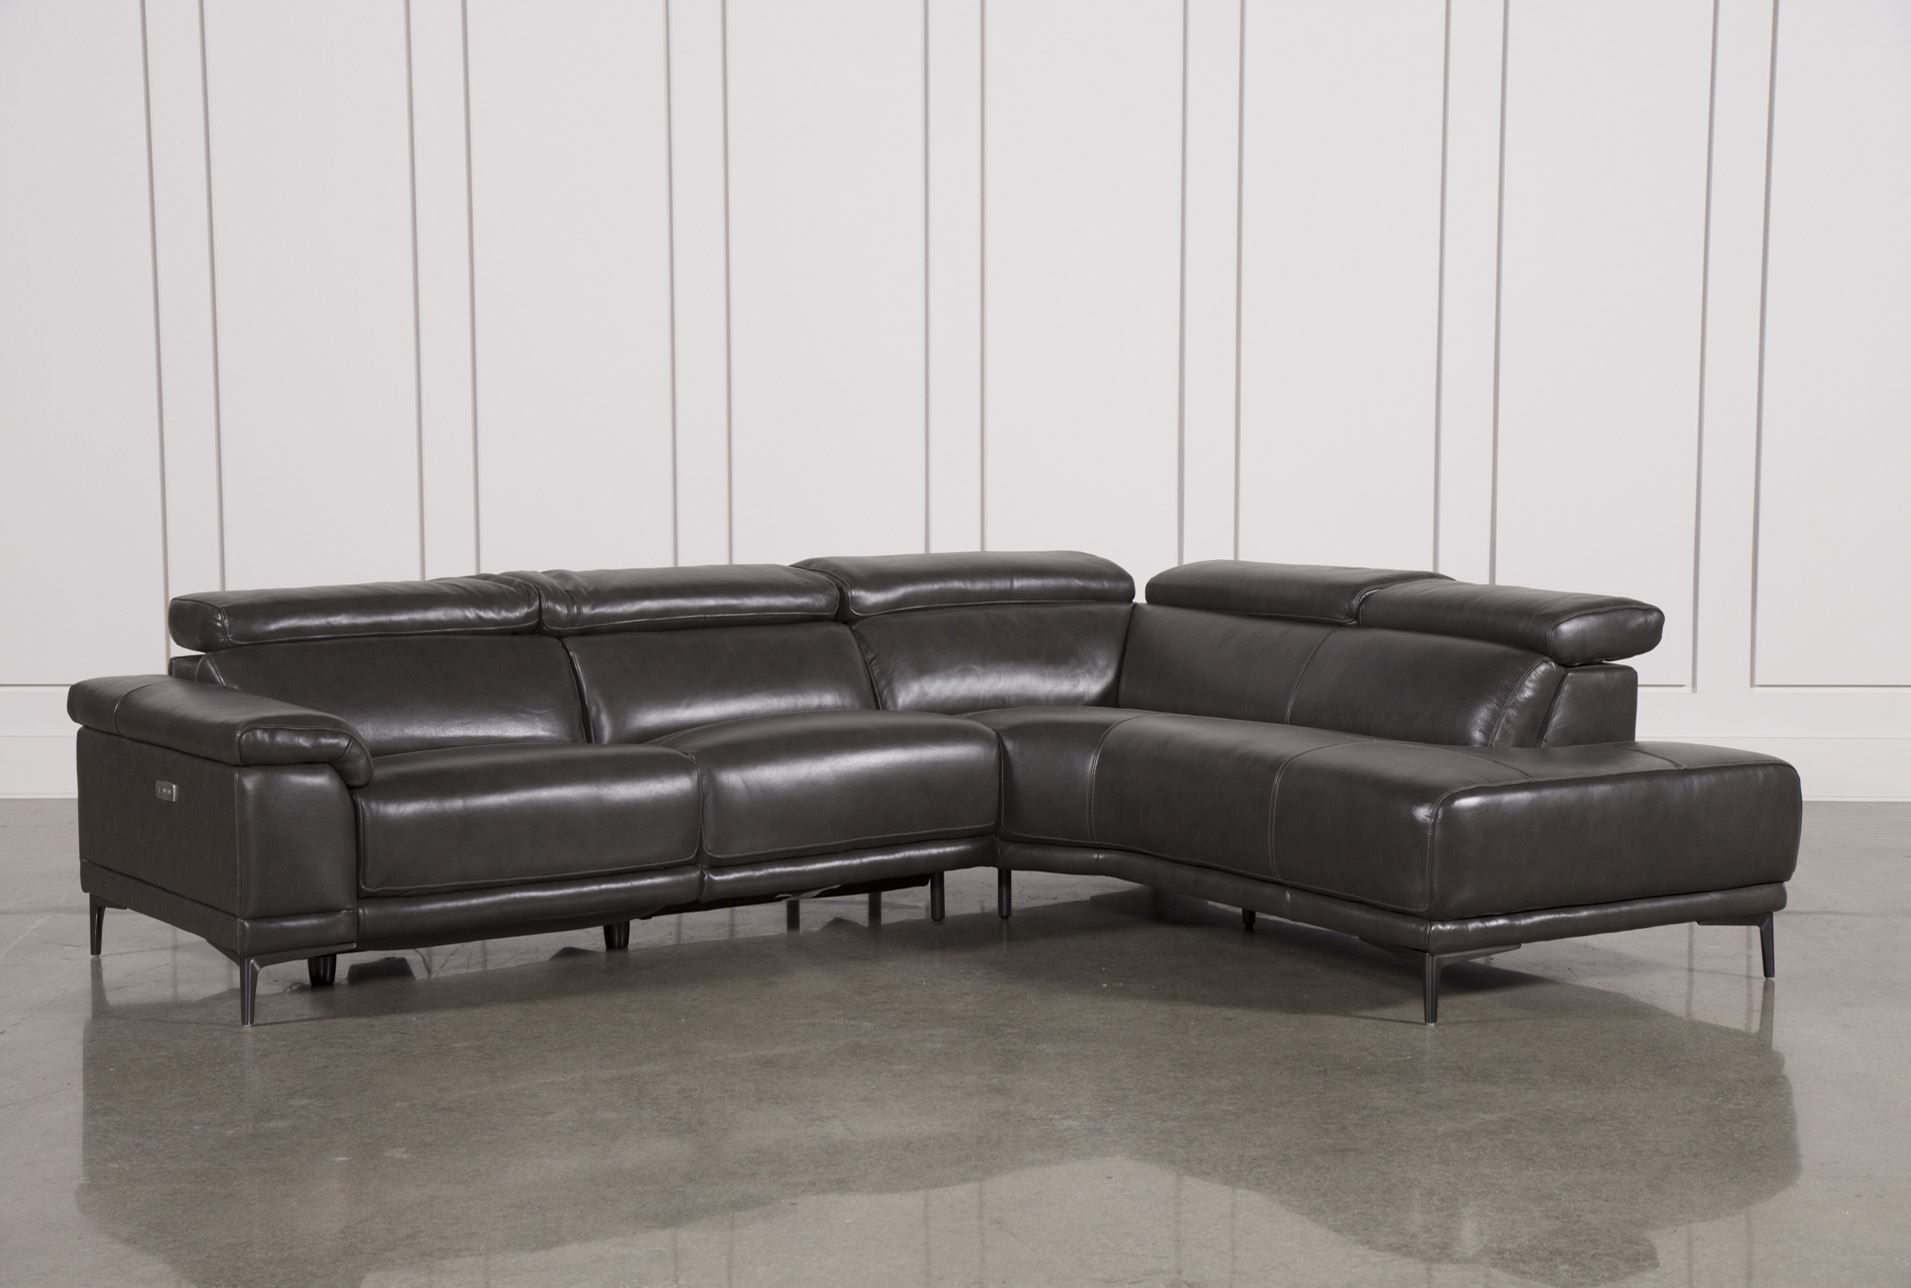 Tatum Dark Grey 2 Piece Sectional W/raf Chaise   New Apt   Pinterest Pertaining To Calder Grey 6 Piece Manual Reclining Sectionals (Image 23 of 25)